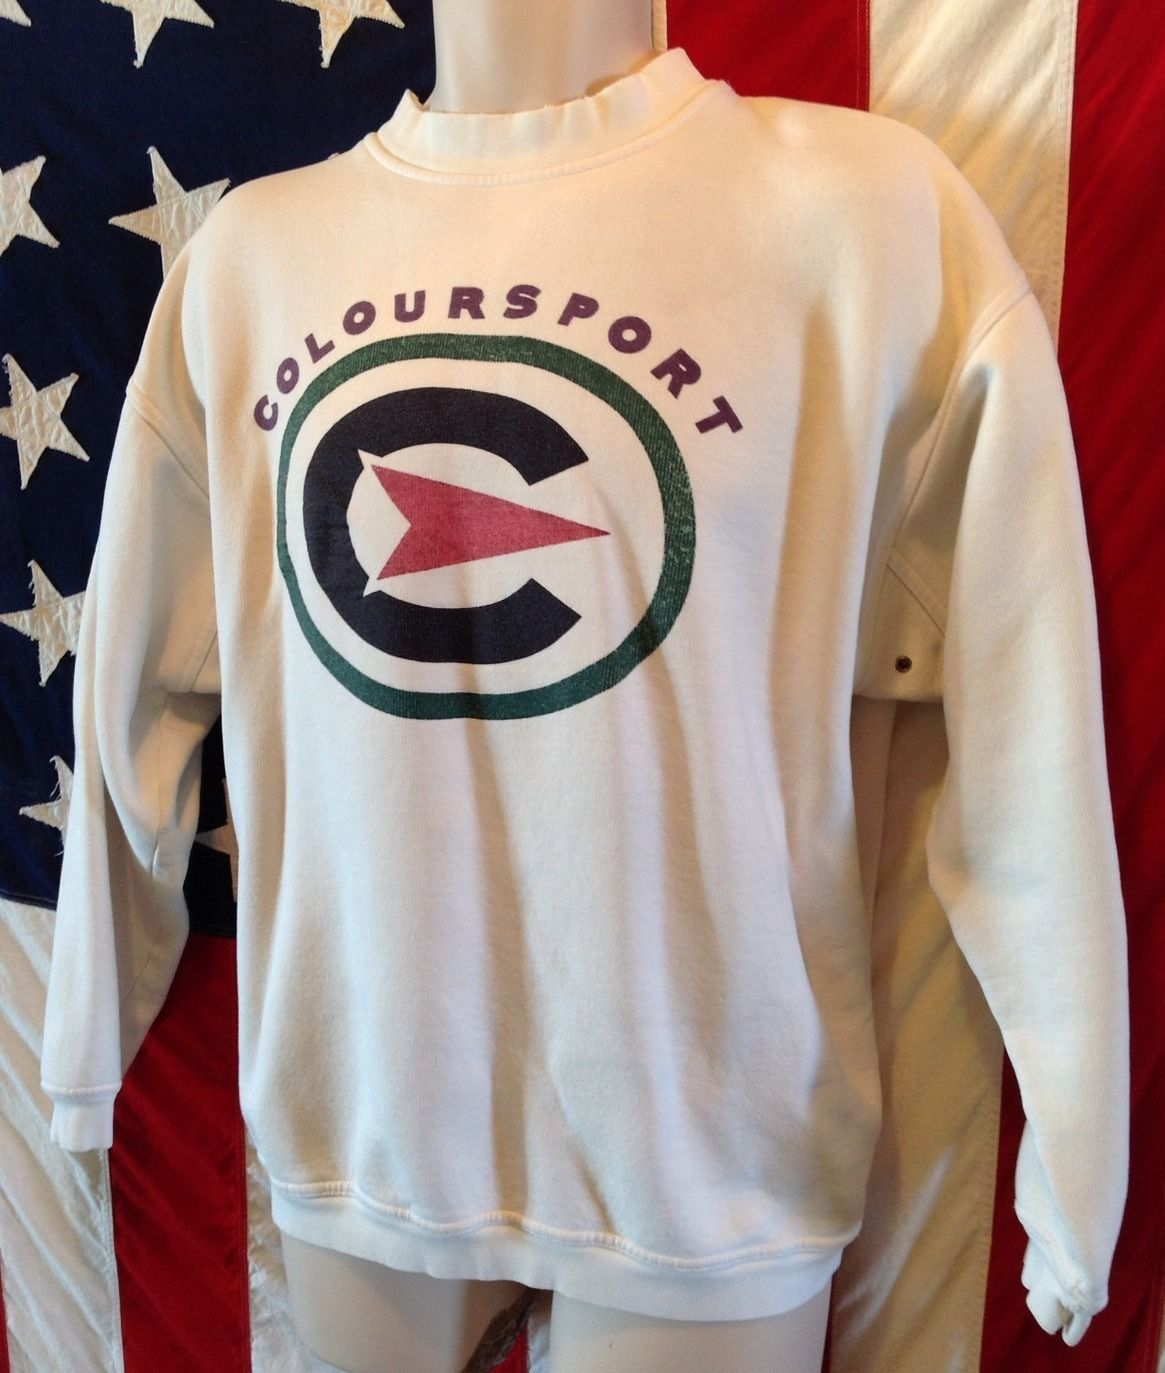 Vintage 90s Alexander Julian COLOURSPORT Sweatshirt Shirt Ski Sz XL Hip Hop Rap